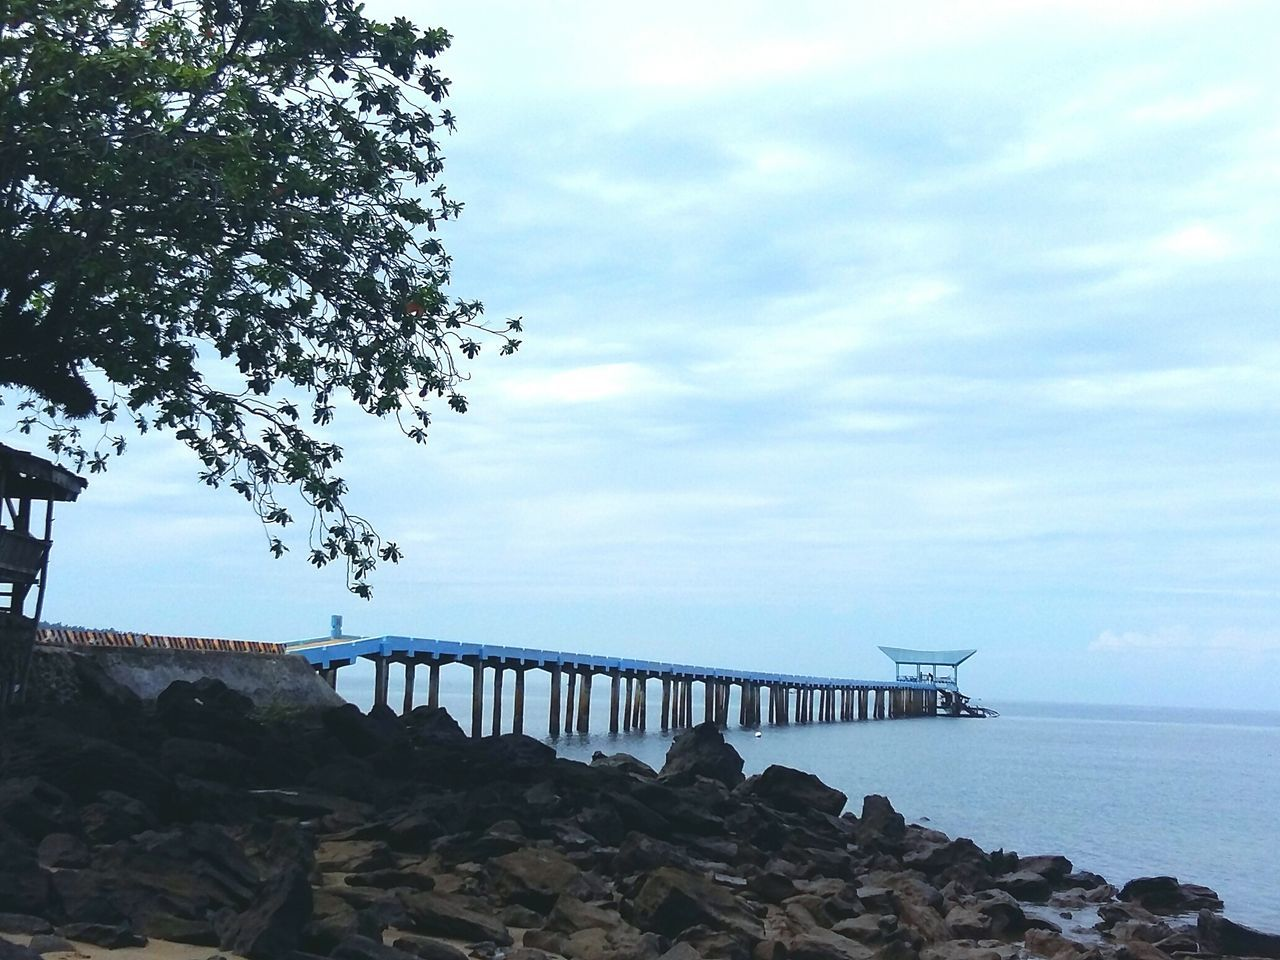 sea, water, sky, nature, scenics, horizon over water, beauty in nature, outdoors, bridge - man made structure, no people, day, tranquil scene, built structure, cloud - sky, tranquility, tree, architecture